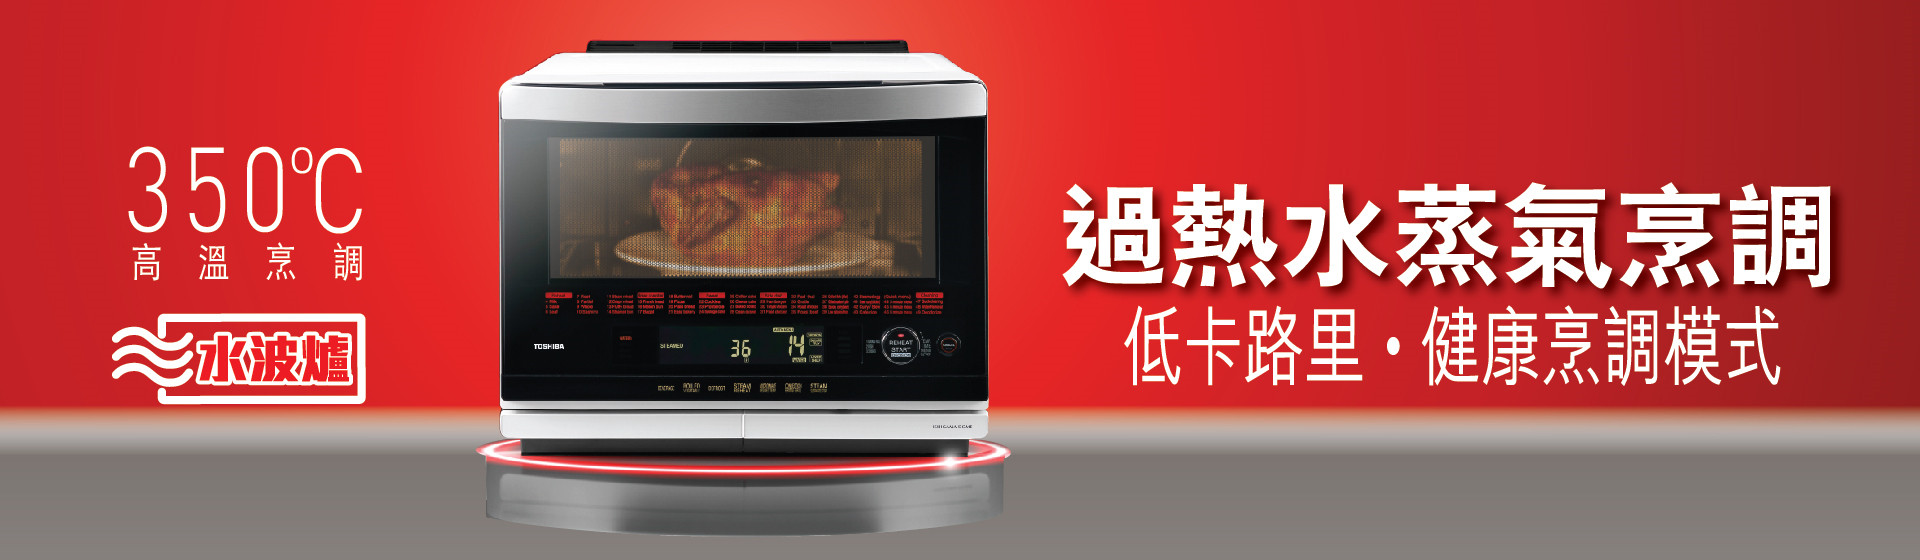 superheated steam oven banner